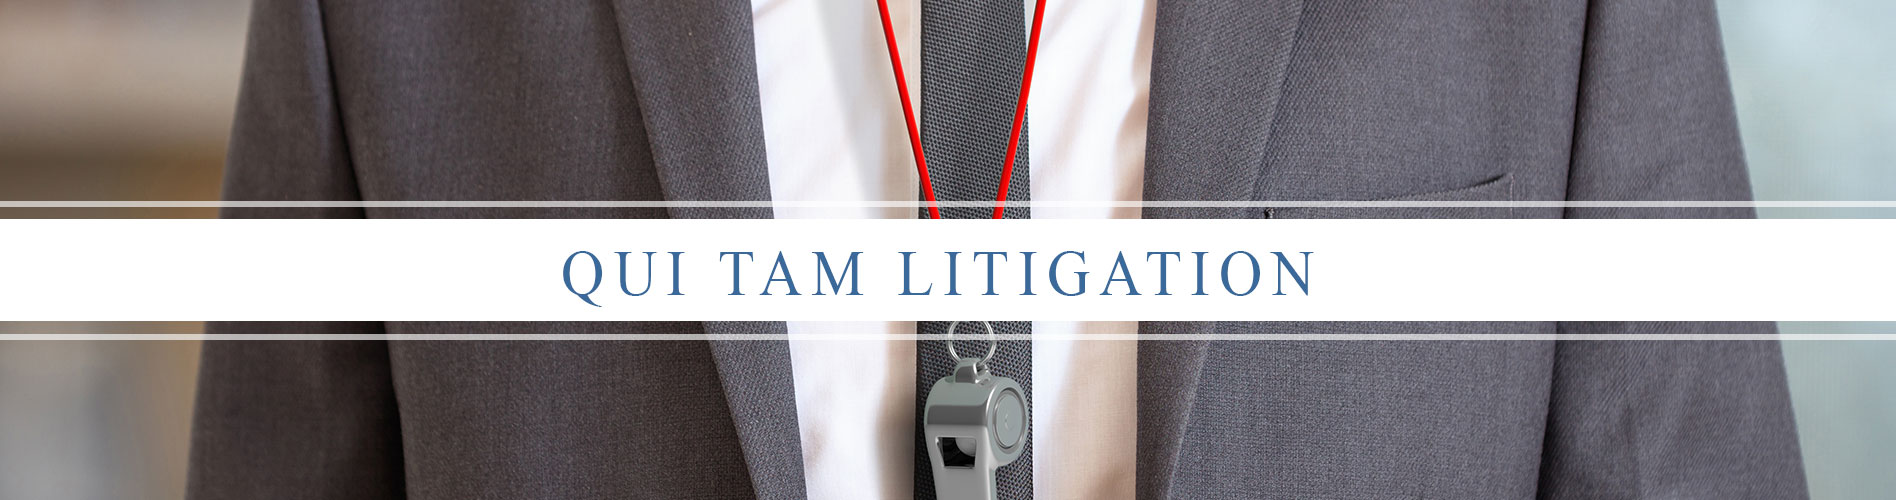 Texas Qui Tam Litigation Lawyers